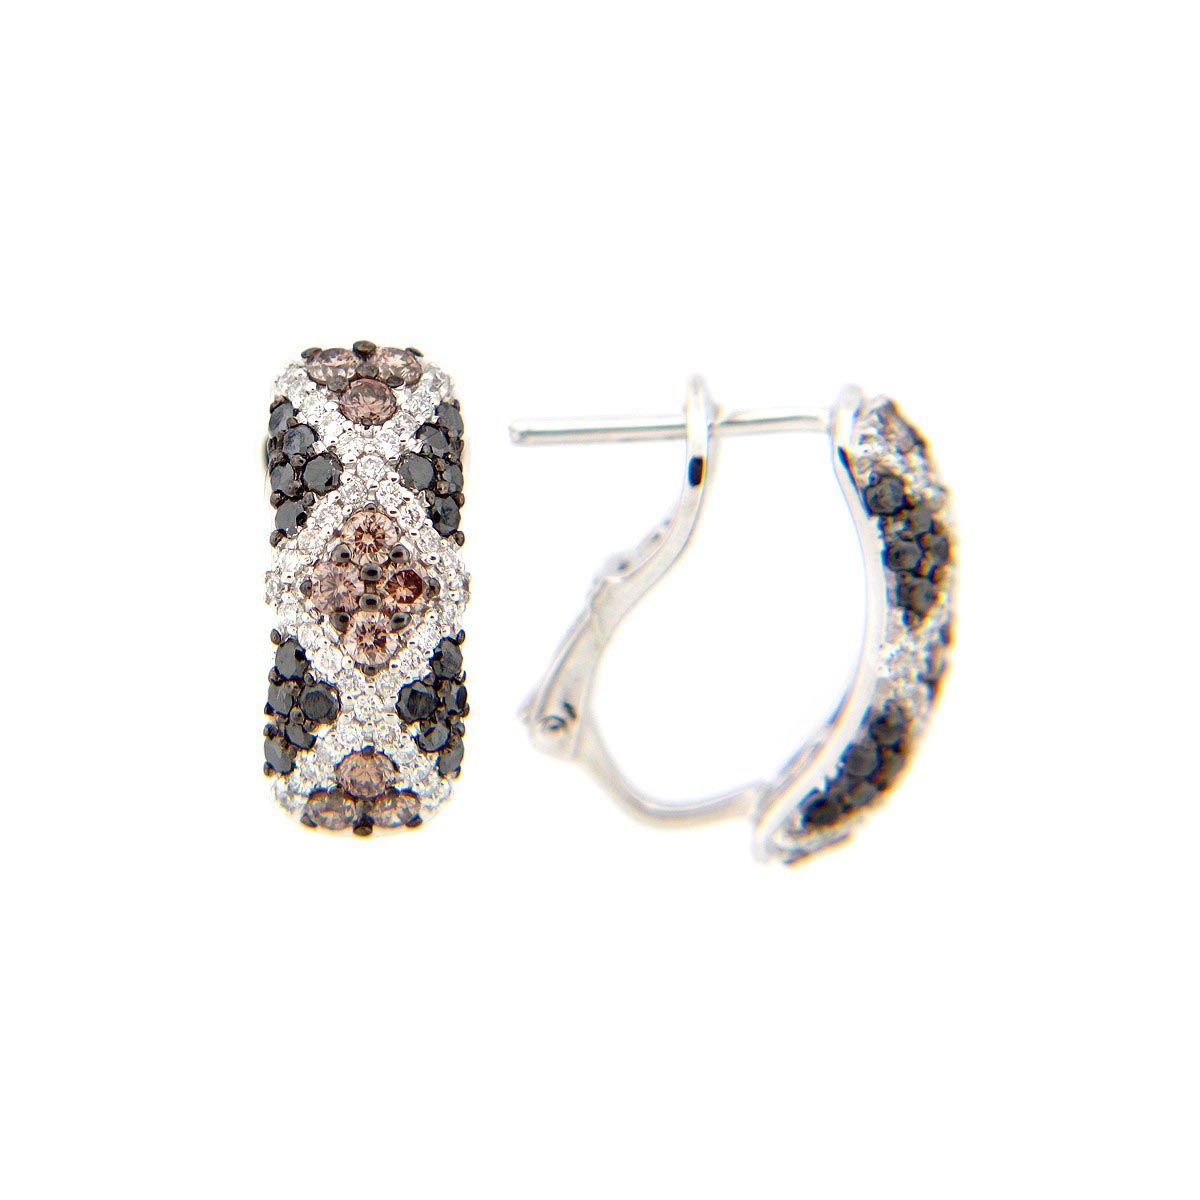 Black, Brown & White Diamond Earring